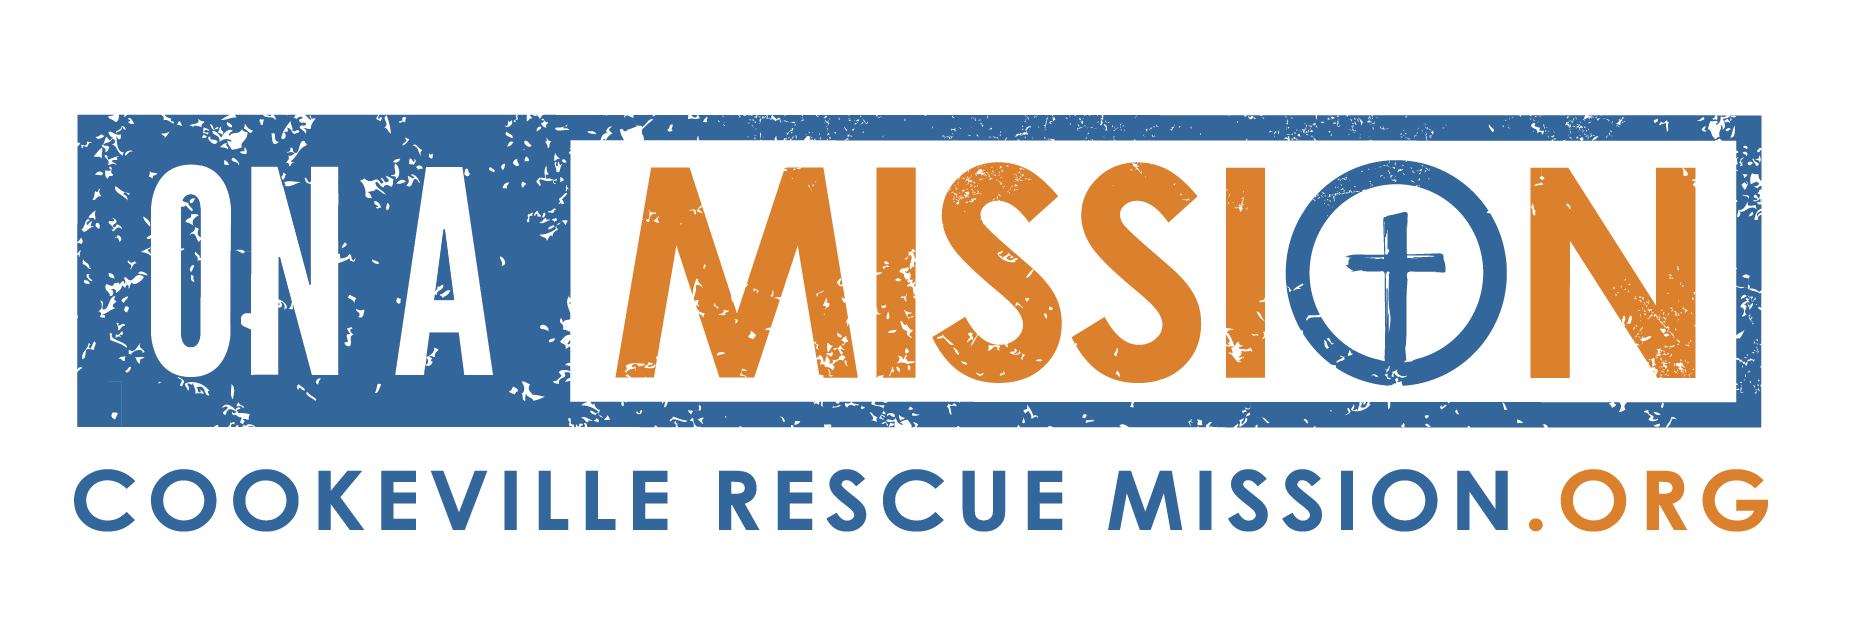 Cookeville Rescue Mission Logo